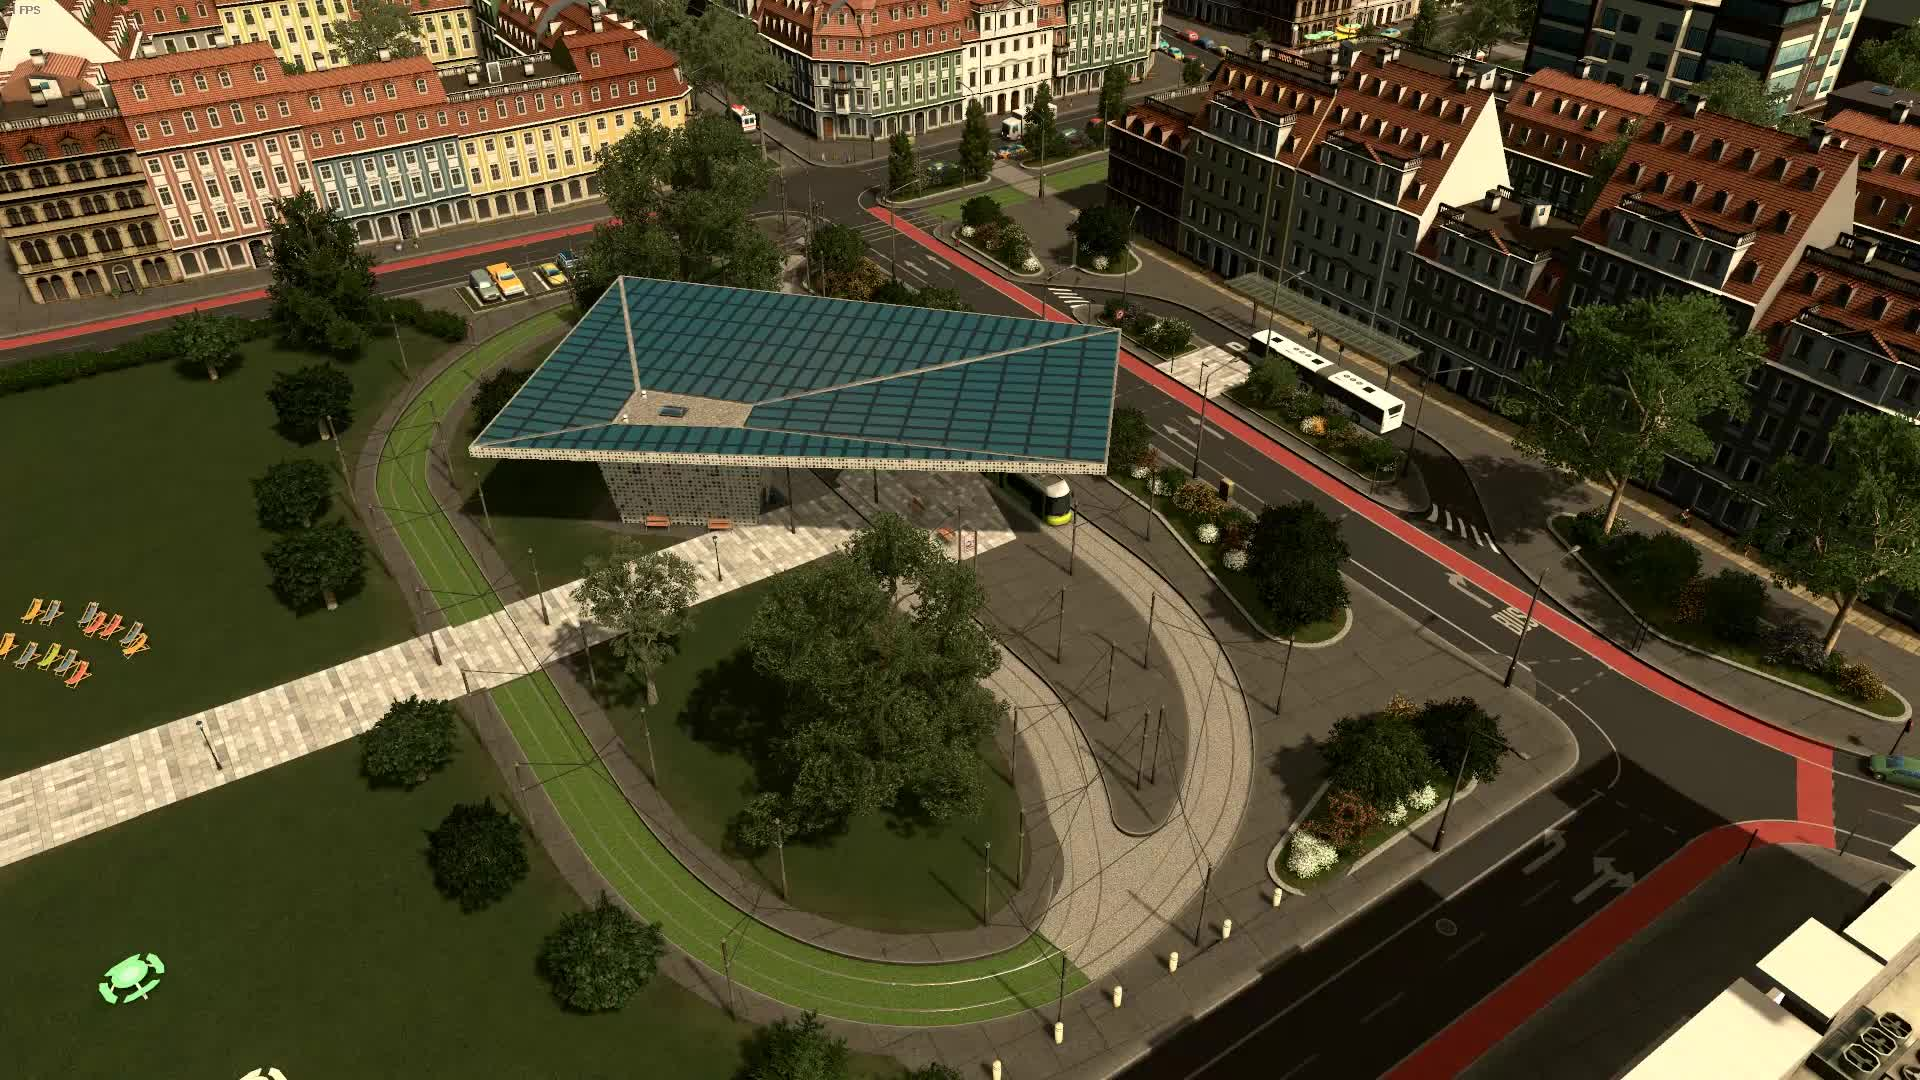 citiesskylines, End of the Line GIFs